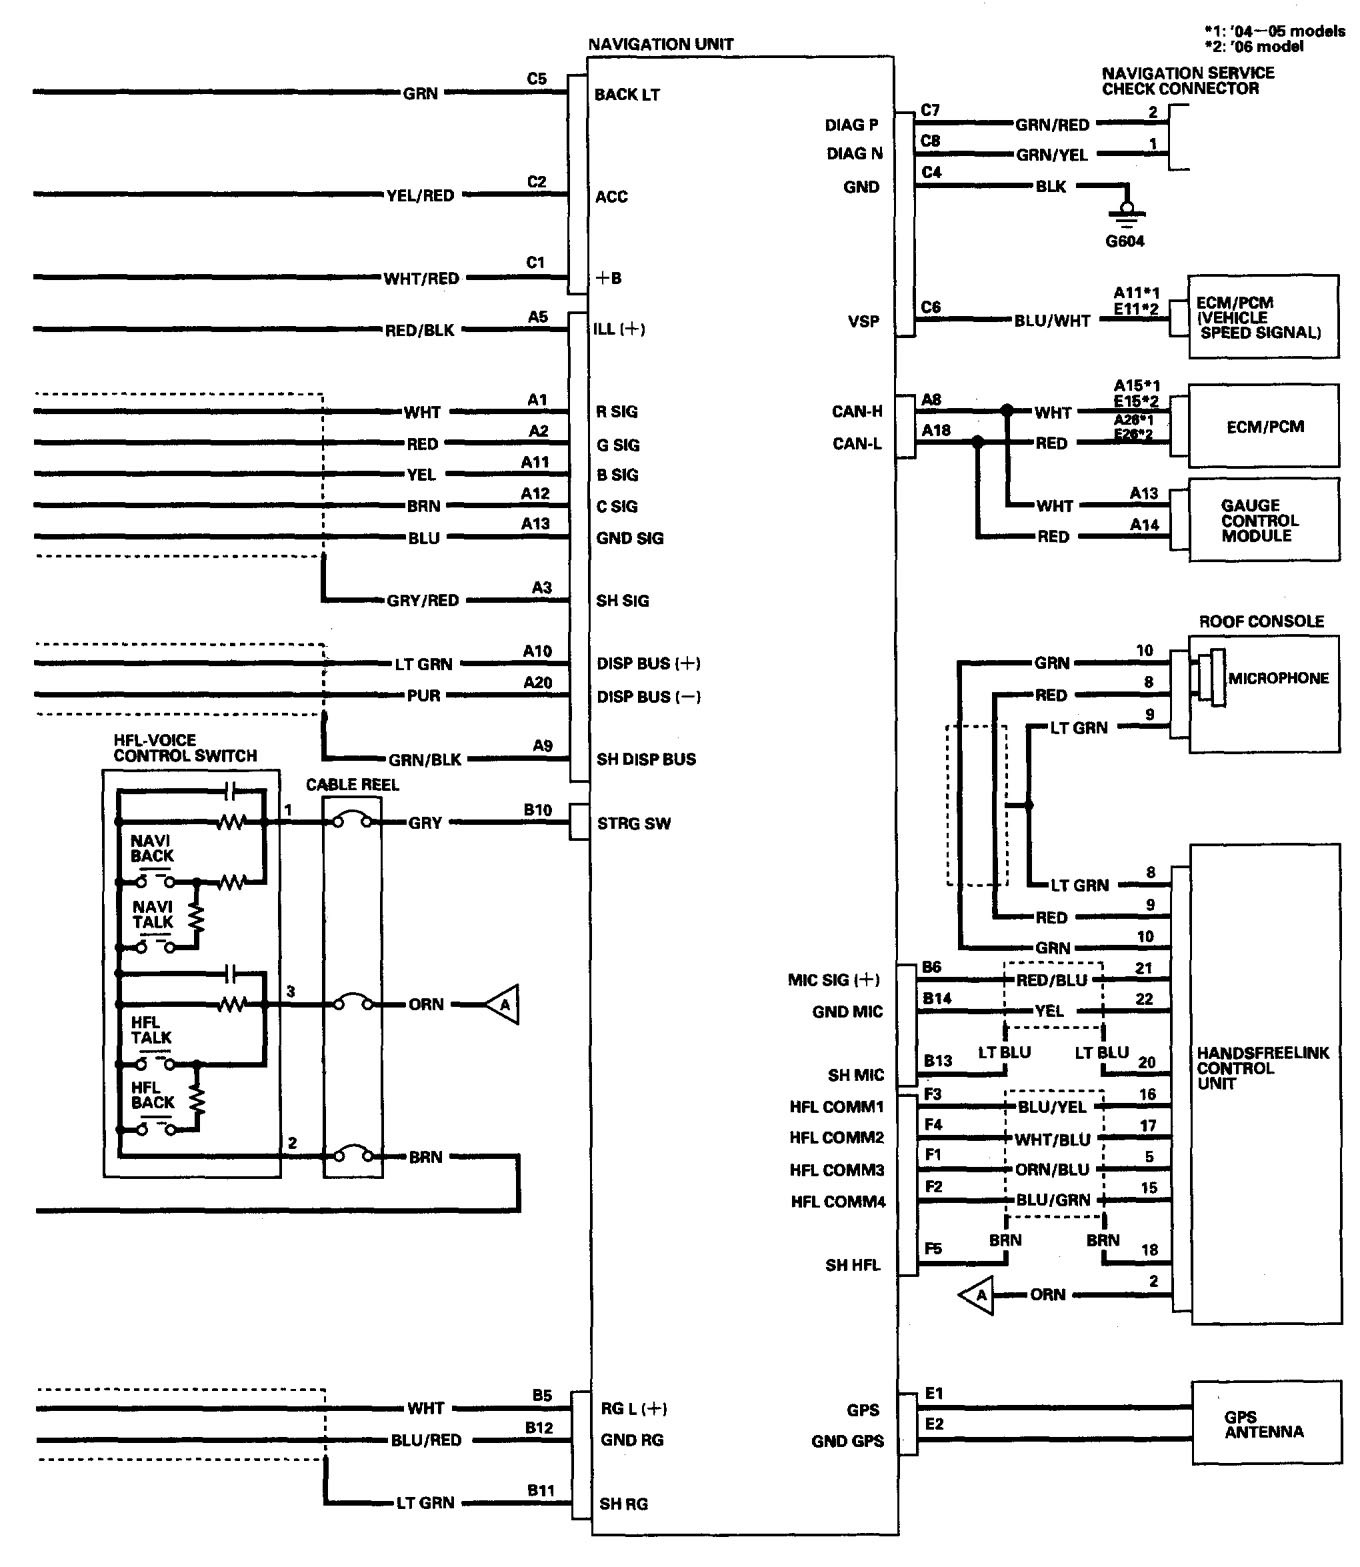 Acura Wiring Schematics Diagrams Symbols In Home Free Download Diagram Schematic 2006 Tl Ignition 37 Outlet Basic Electrical